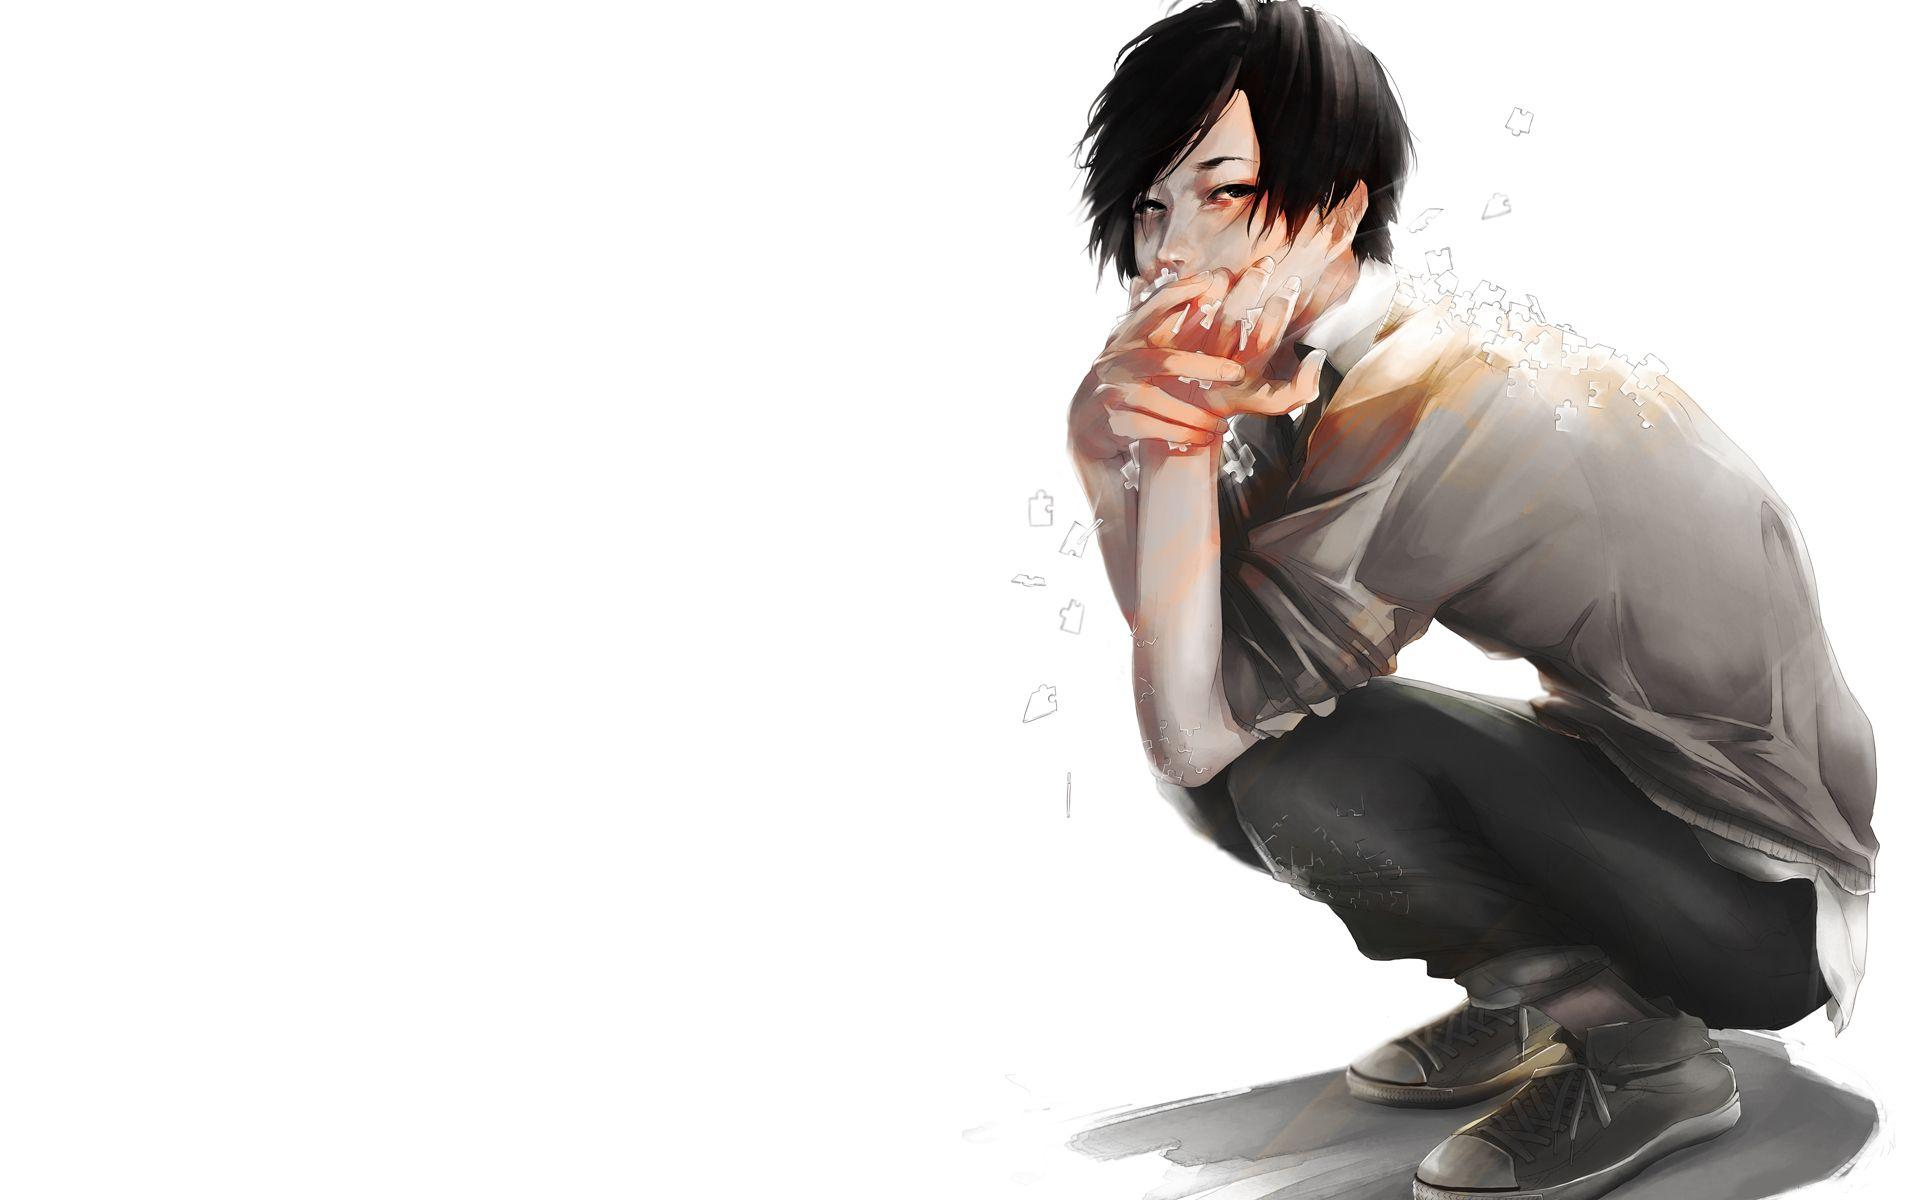 Anime Boy Sitting wallpapers